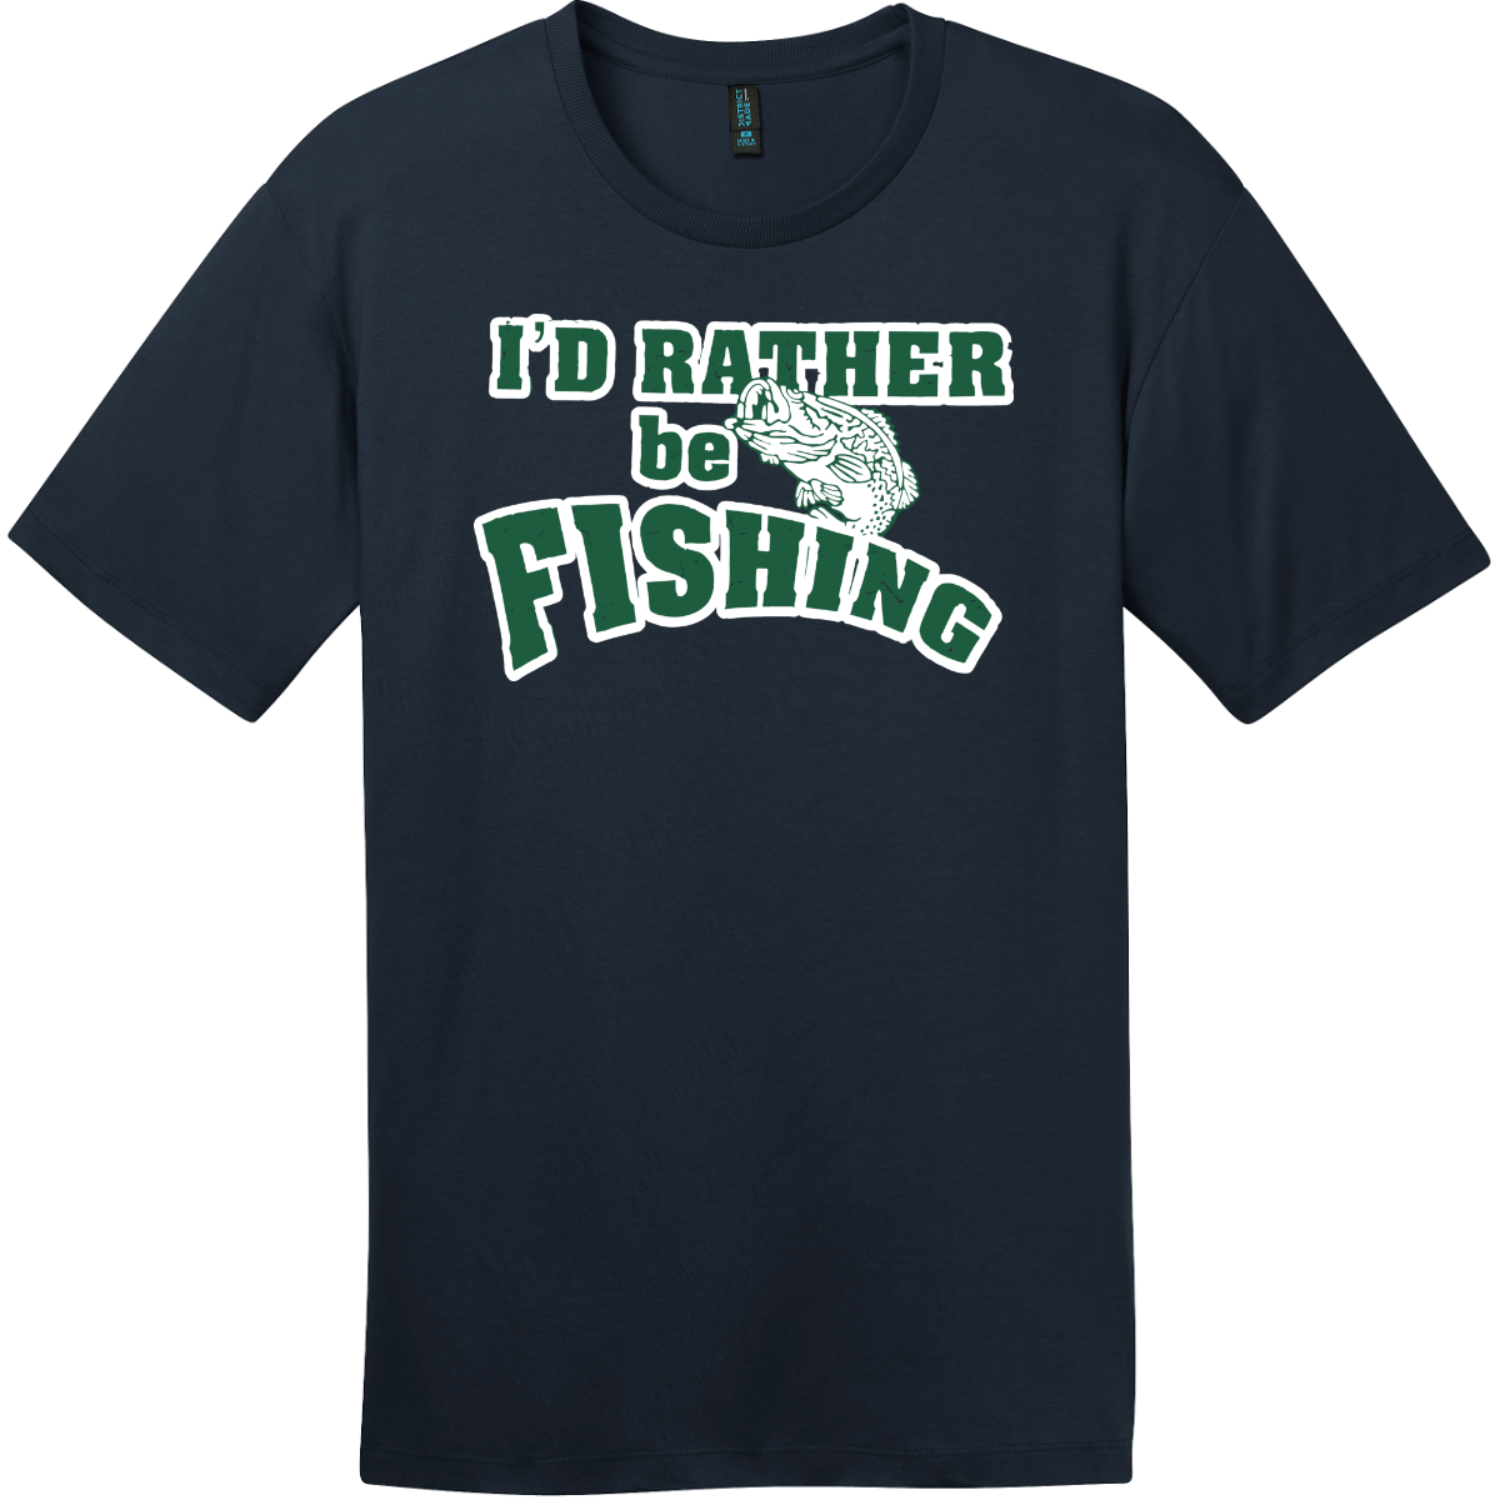 I'd Rather Be Fishing T-Shirt New Navy District Perfect Weight Tee DT104